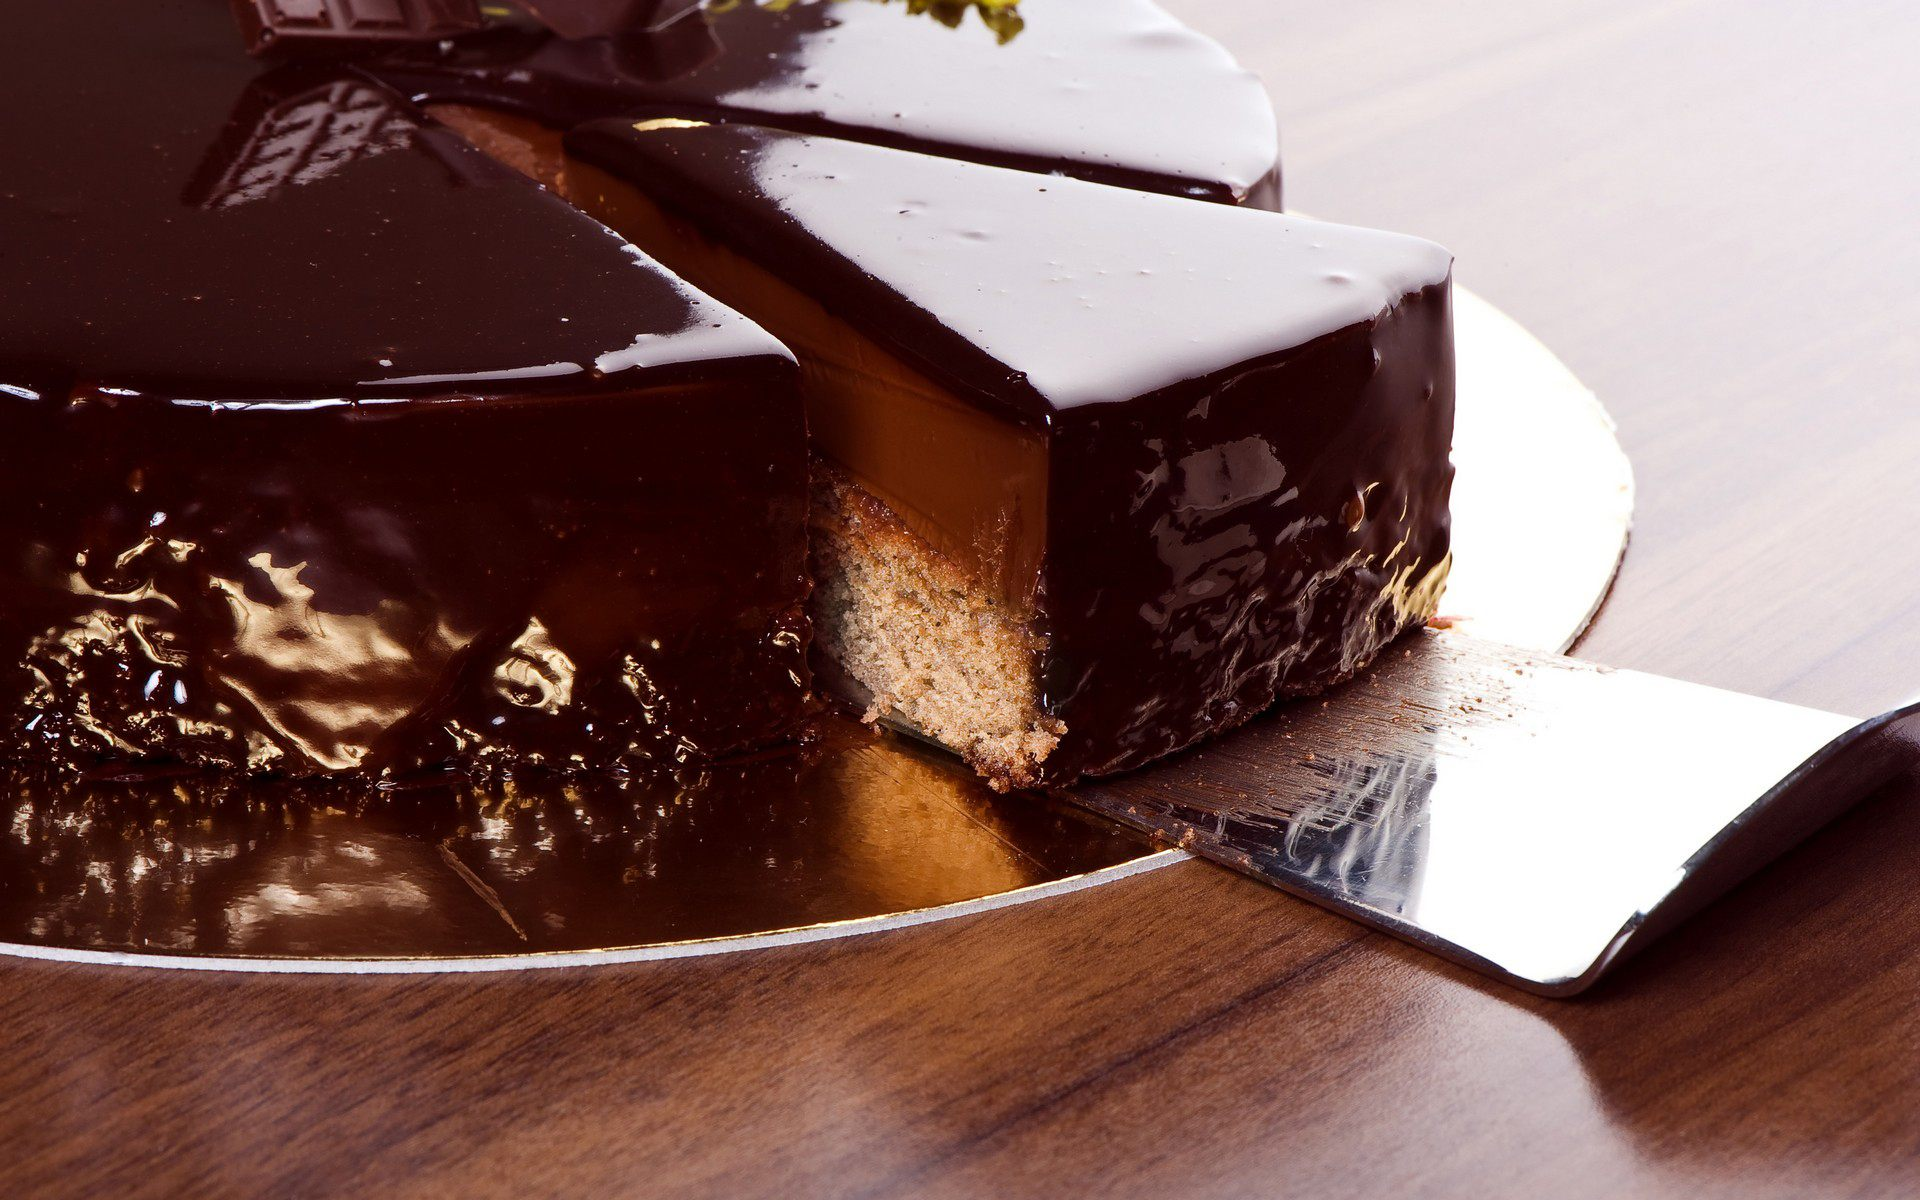 Chocolate Cake Images In Hd : Chocolate Cake 5950 1920x1200 px ~ HDWallSource.com